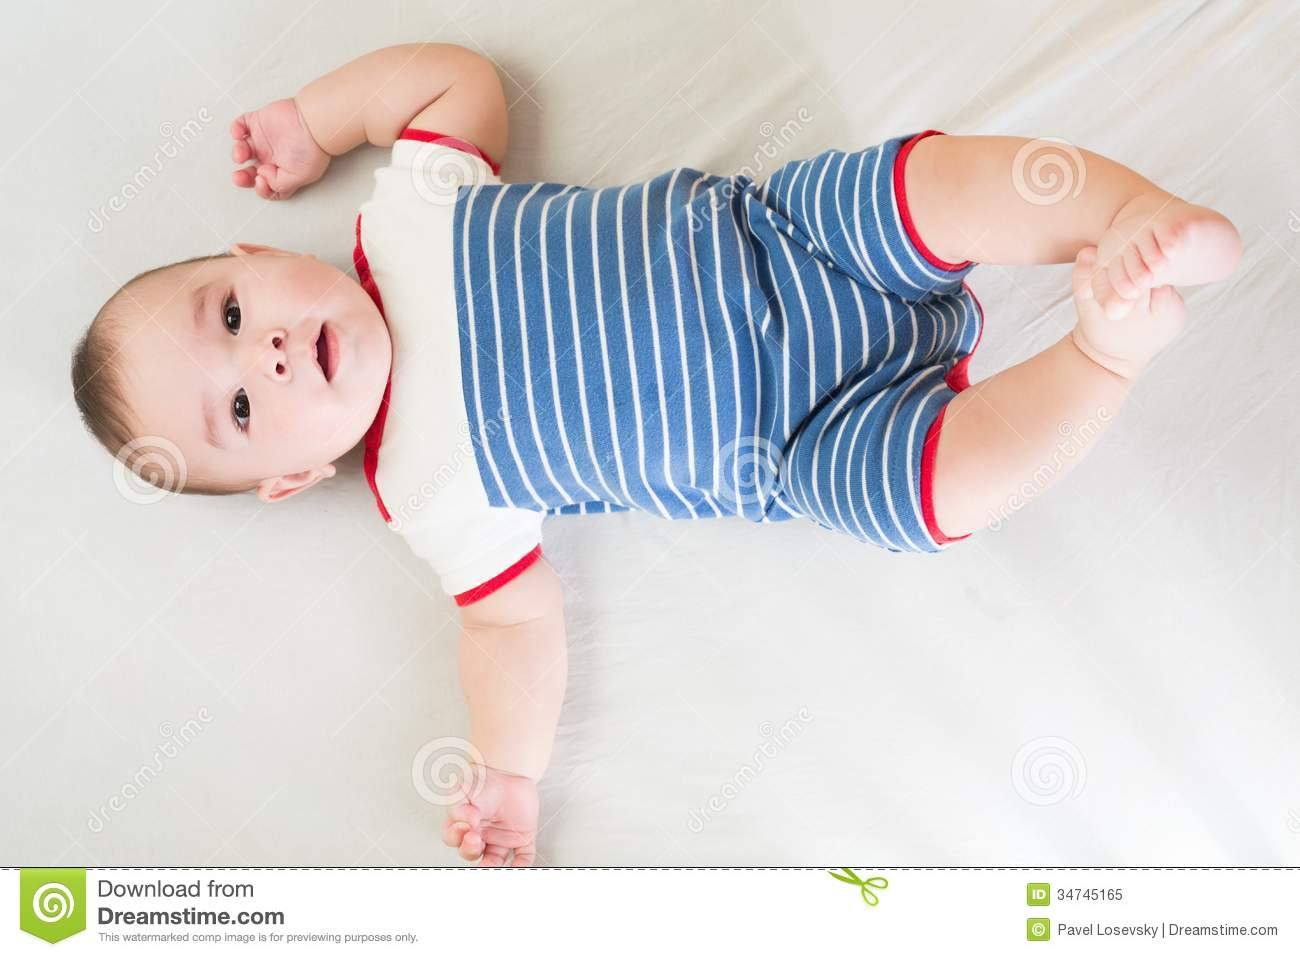 Download Barefoot Baby Boy In A Striped Dress Lies Stock Image - Image of elegant, beauty: 34745165